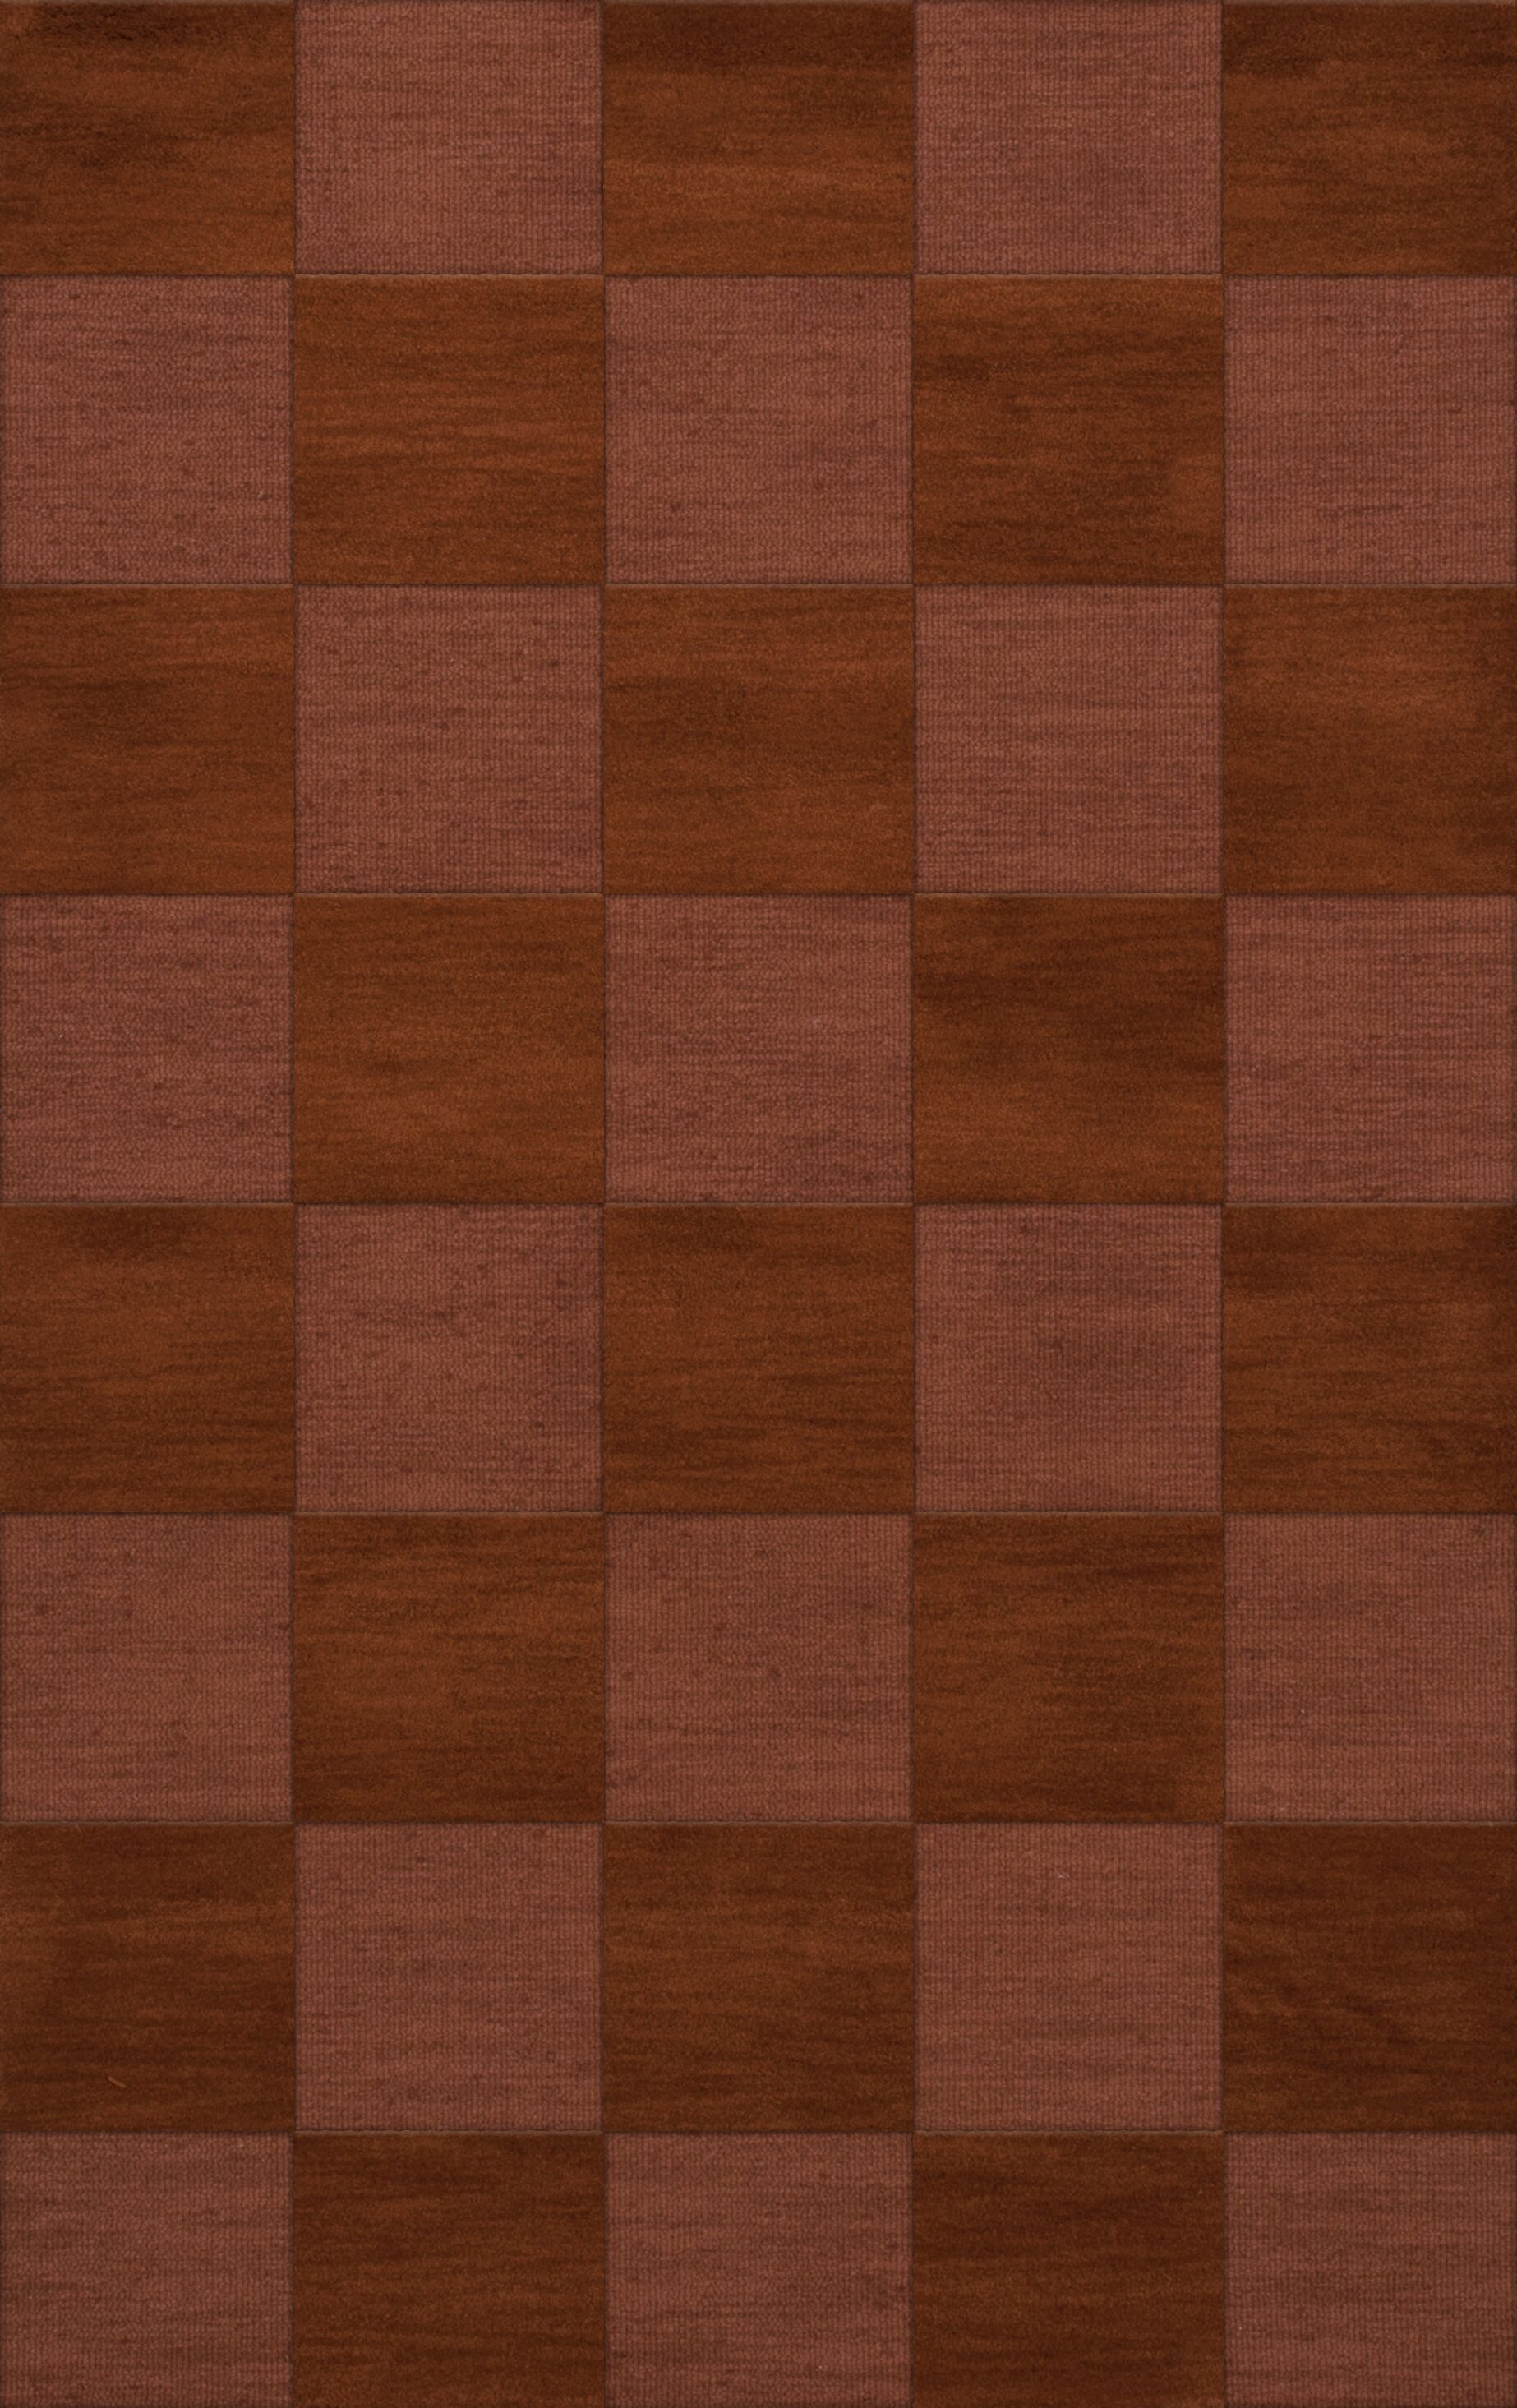 Dover Tufted Wool Spice Area Rug Rug Size: Rectangle 5' x 8'